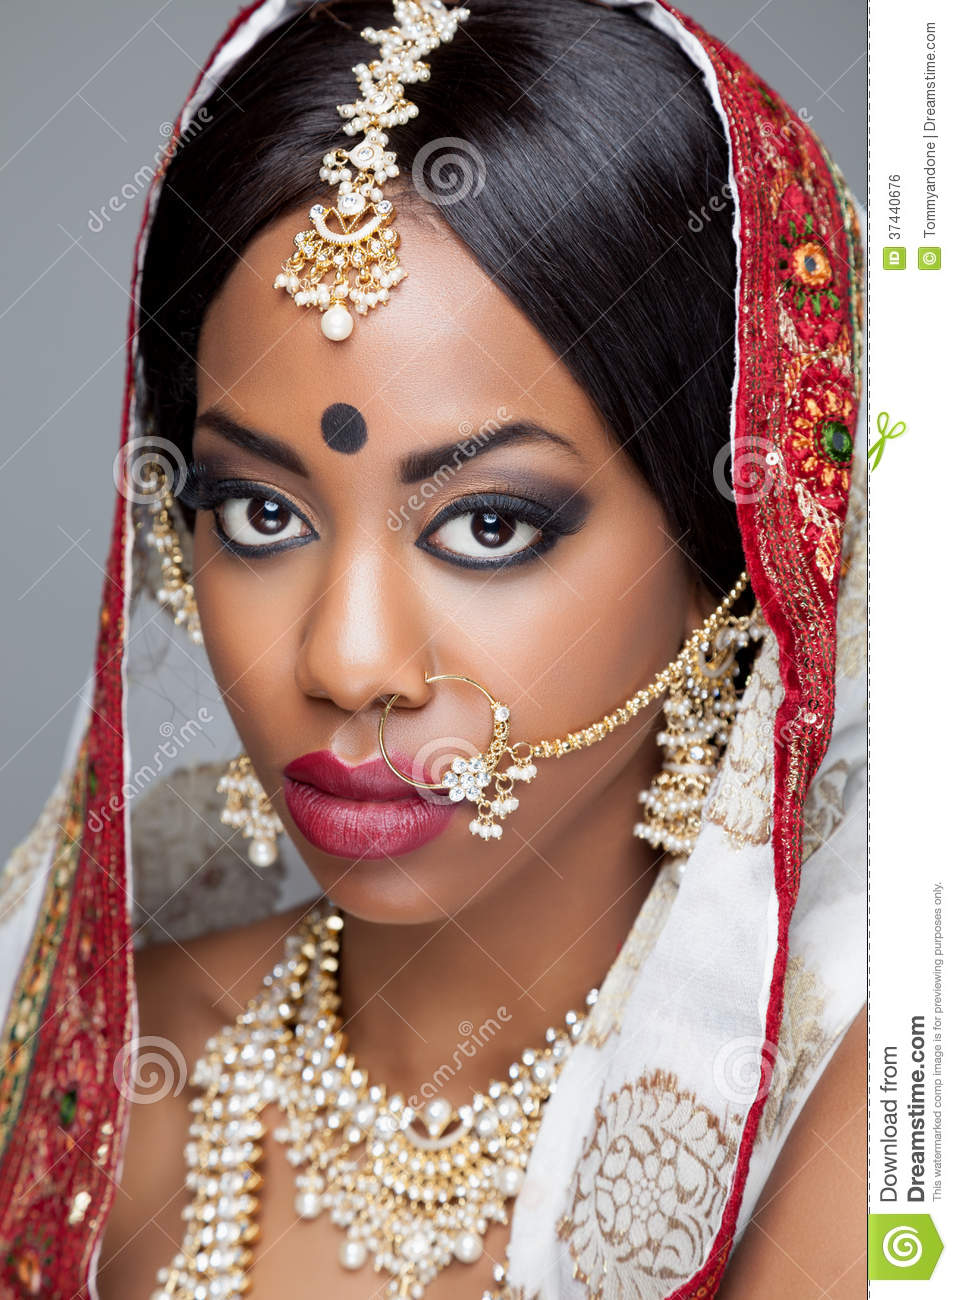 young indian woman in traditional clothing with bridal